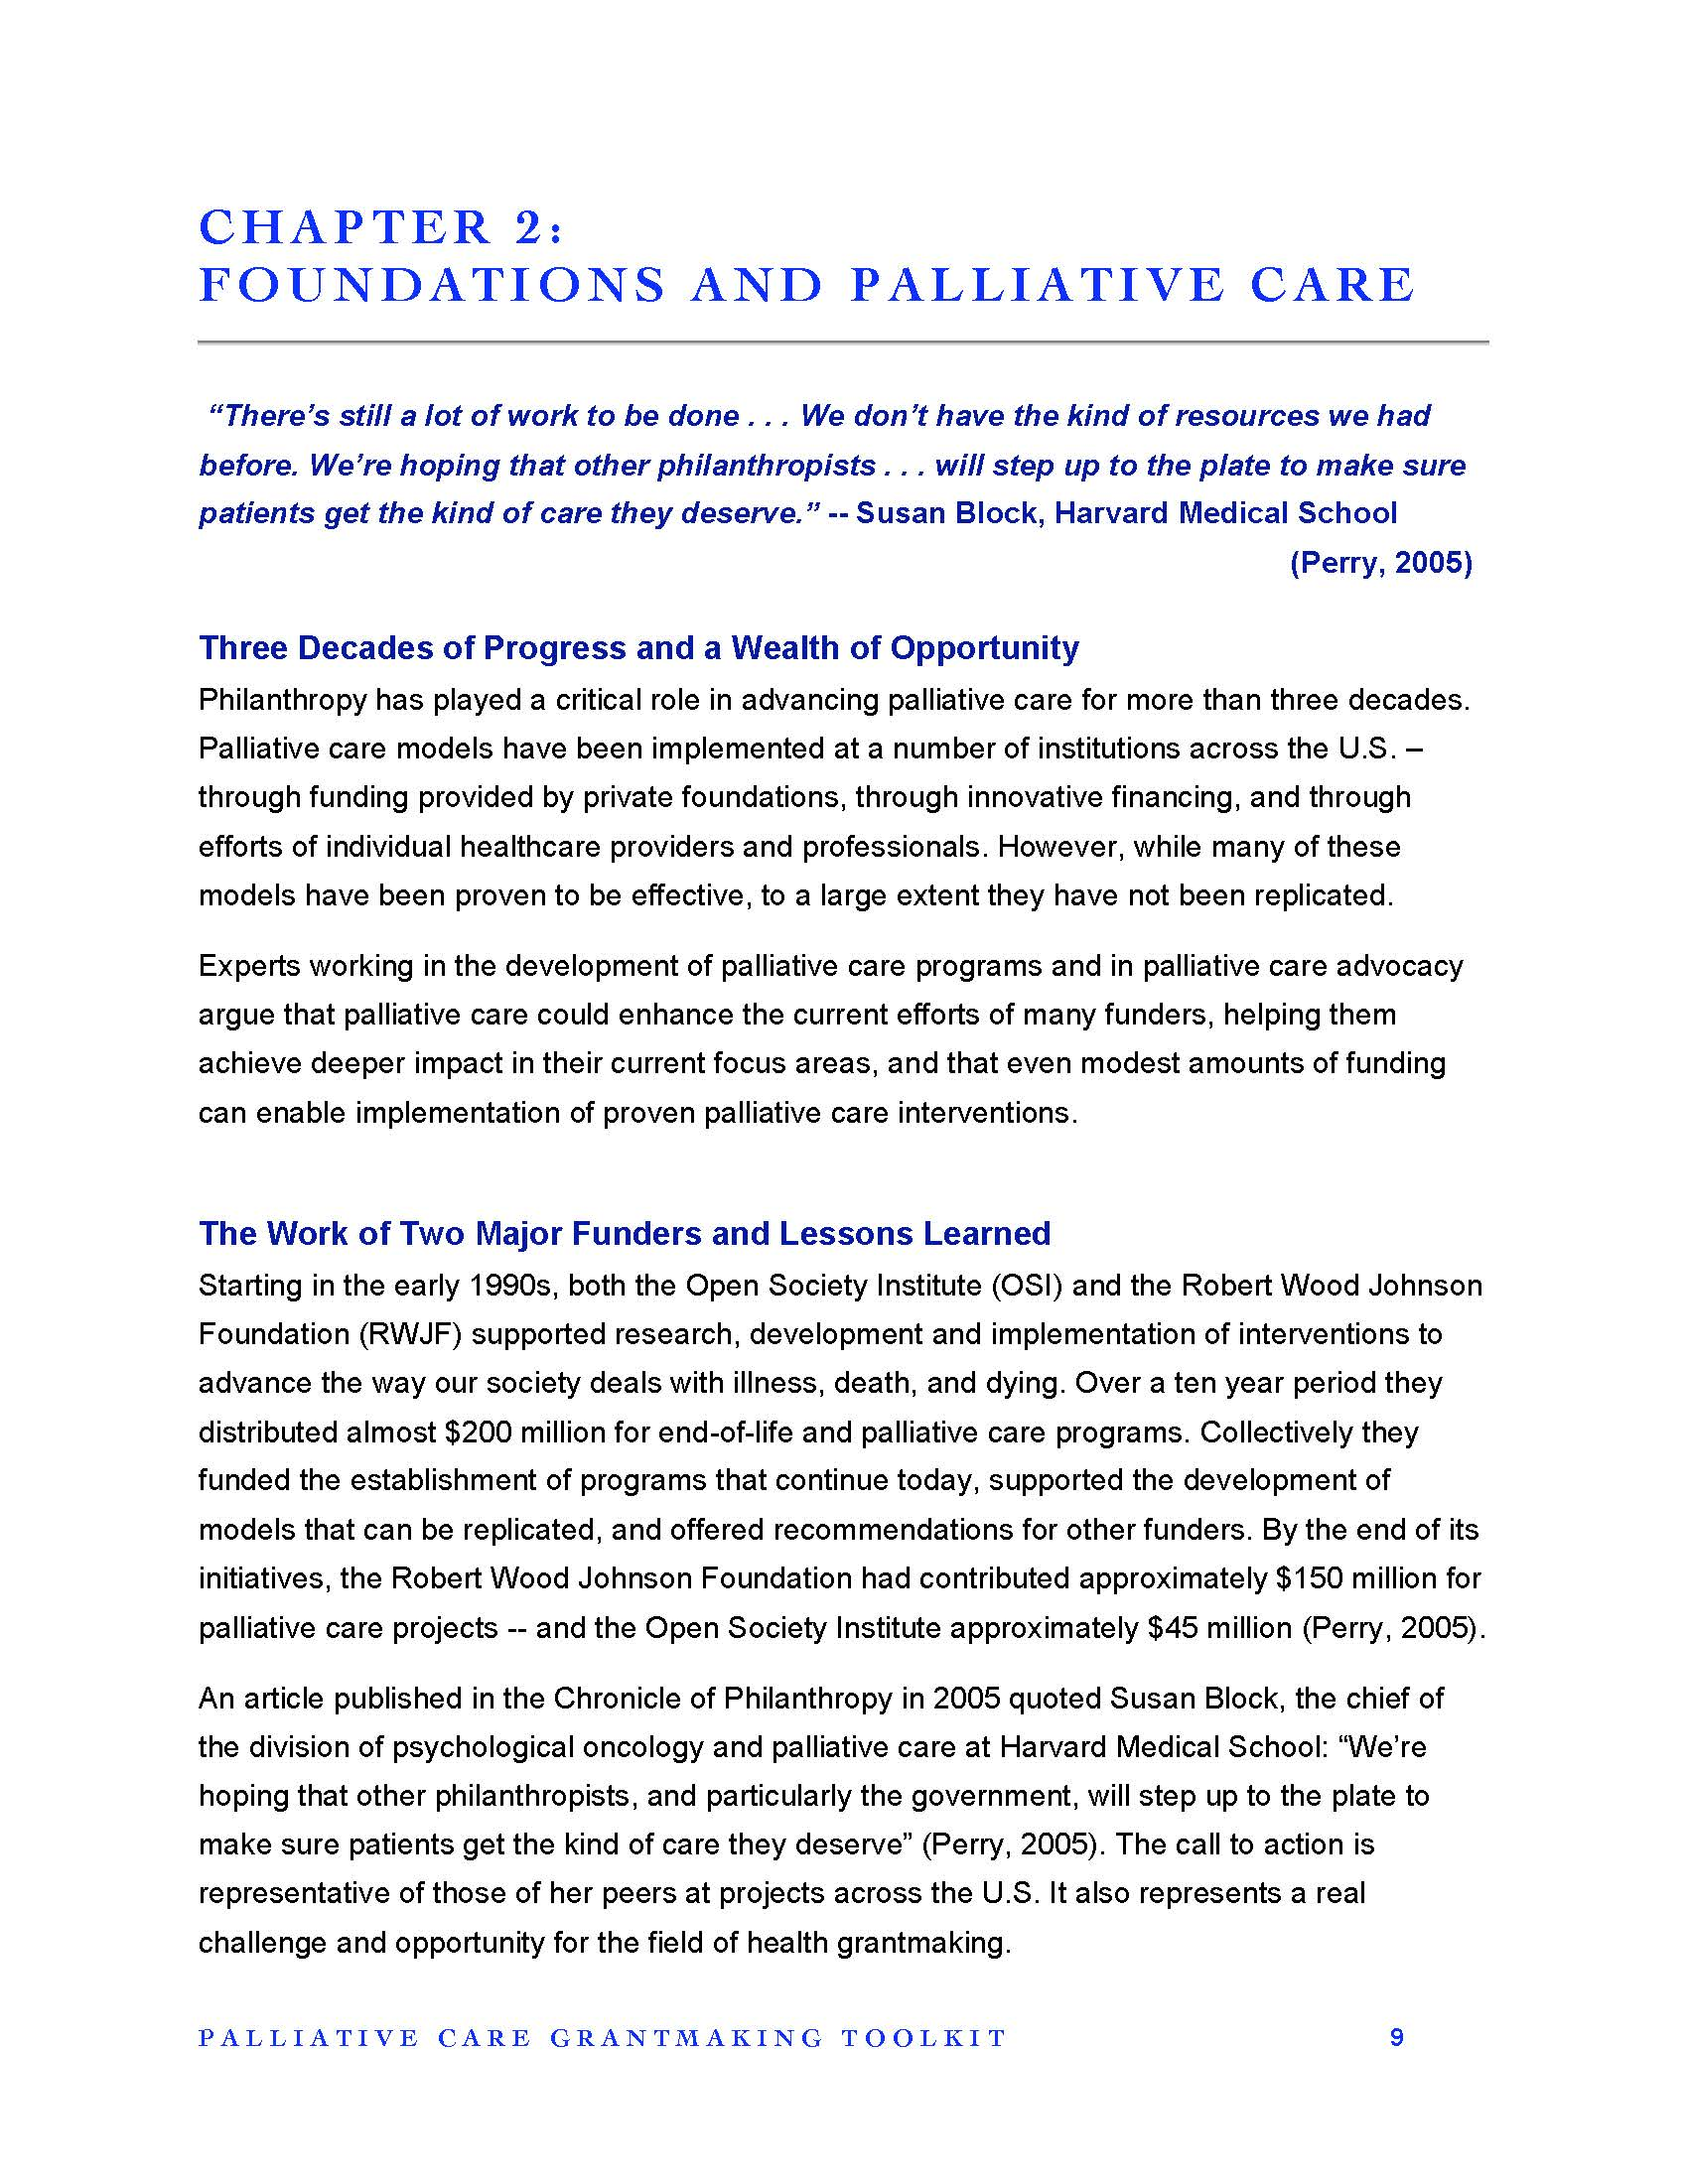 Palliative Care Grantmaking Toolkit_Page_10.jpg